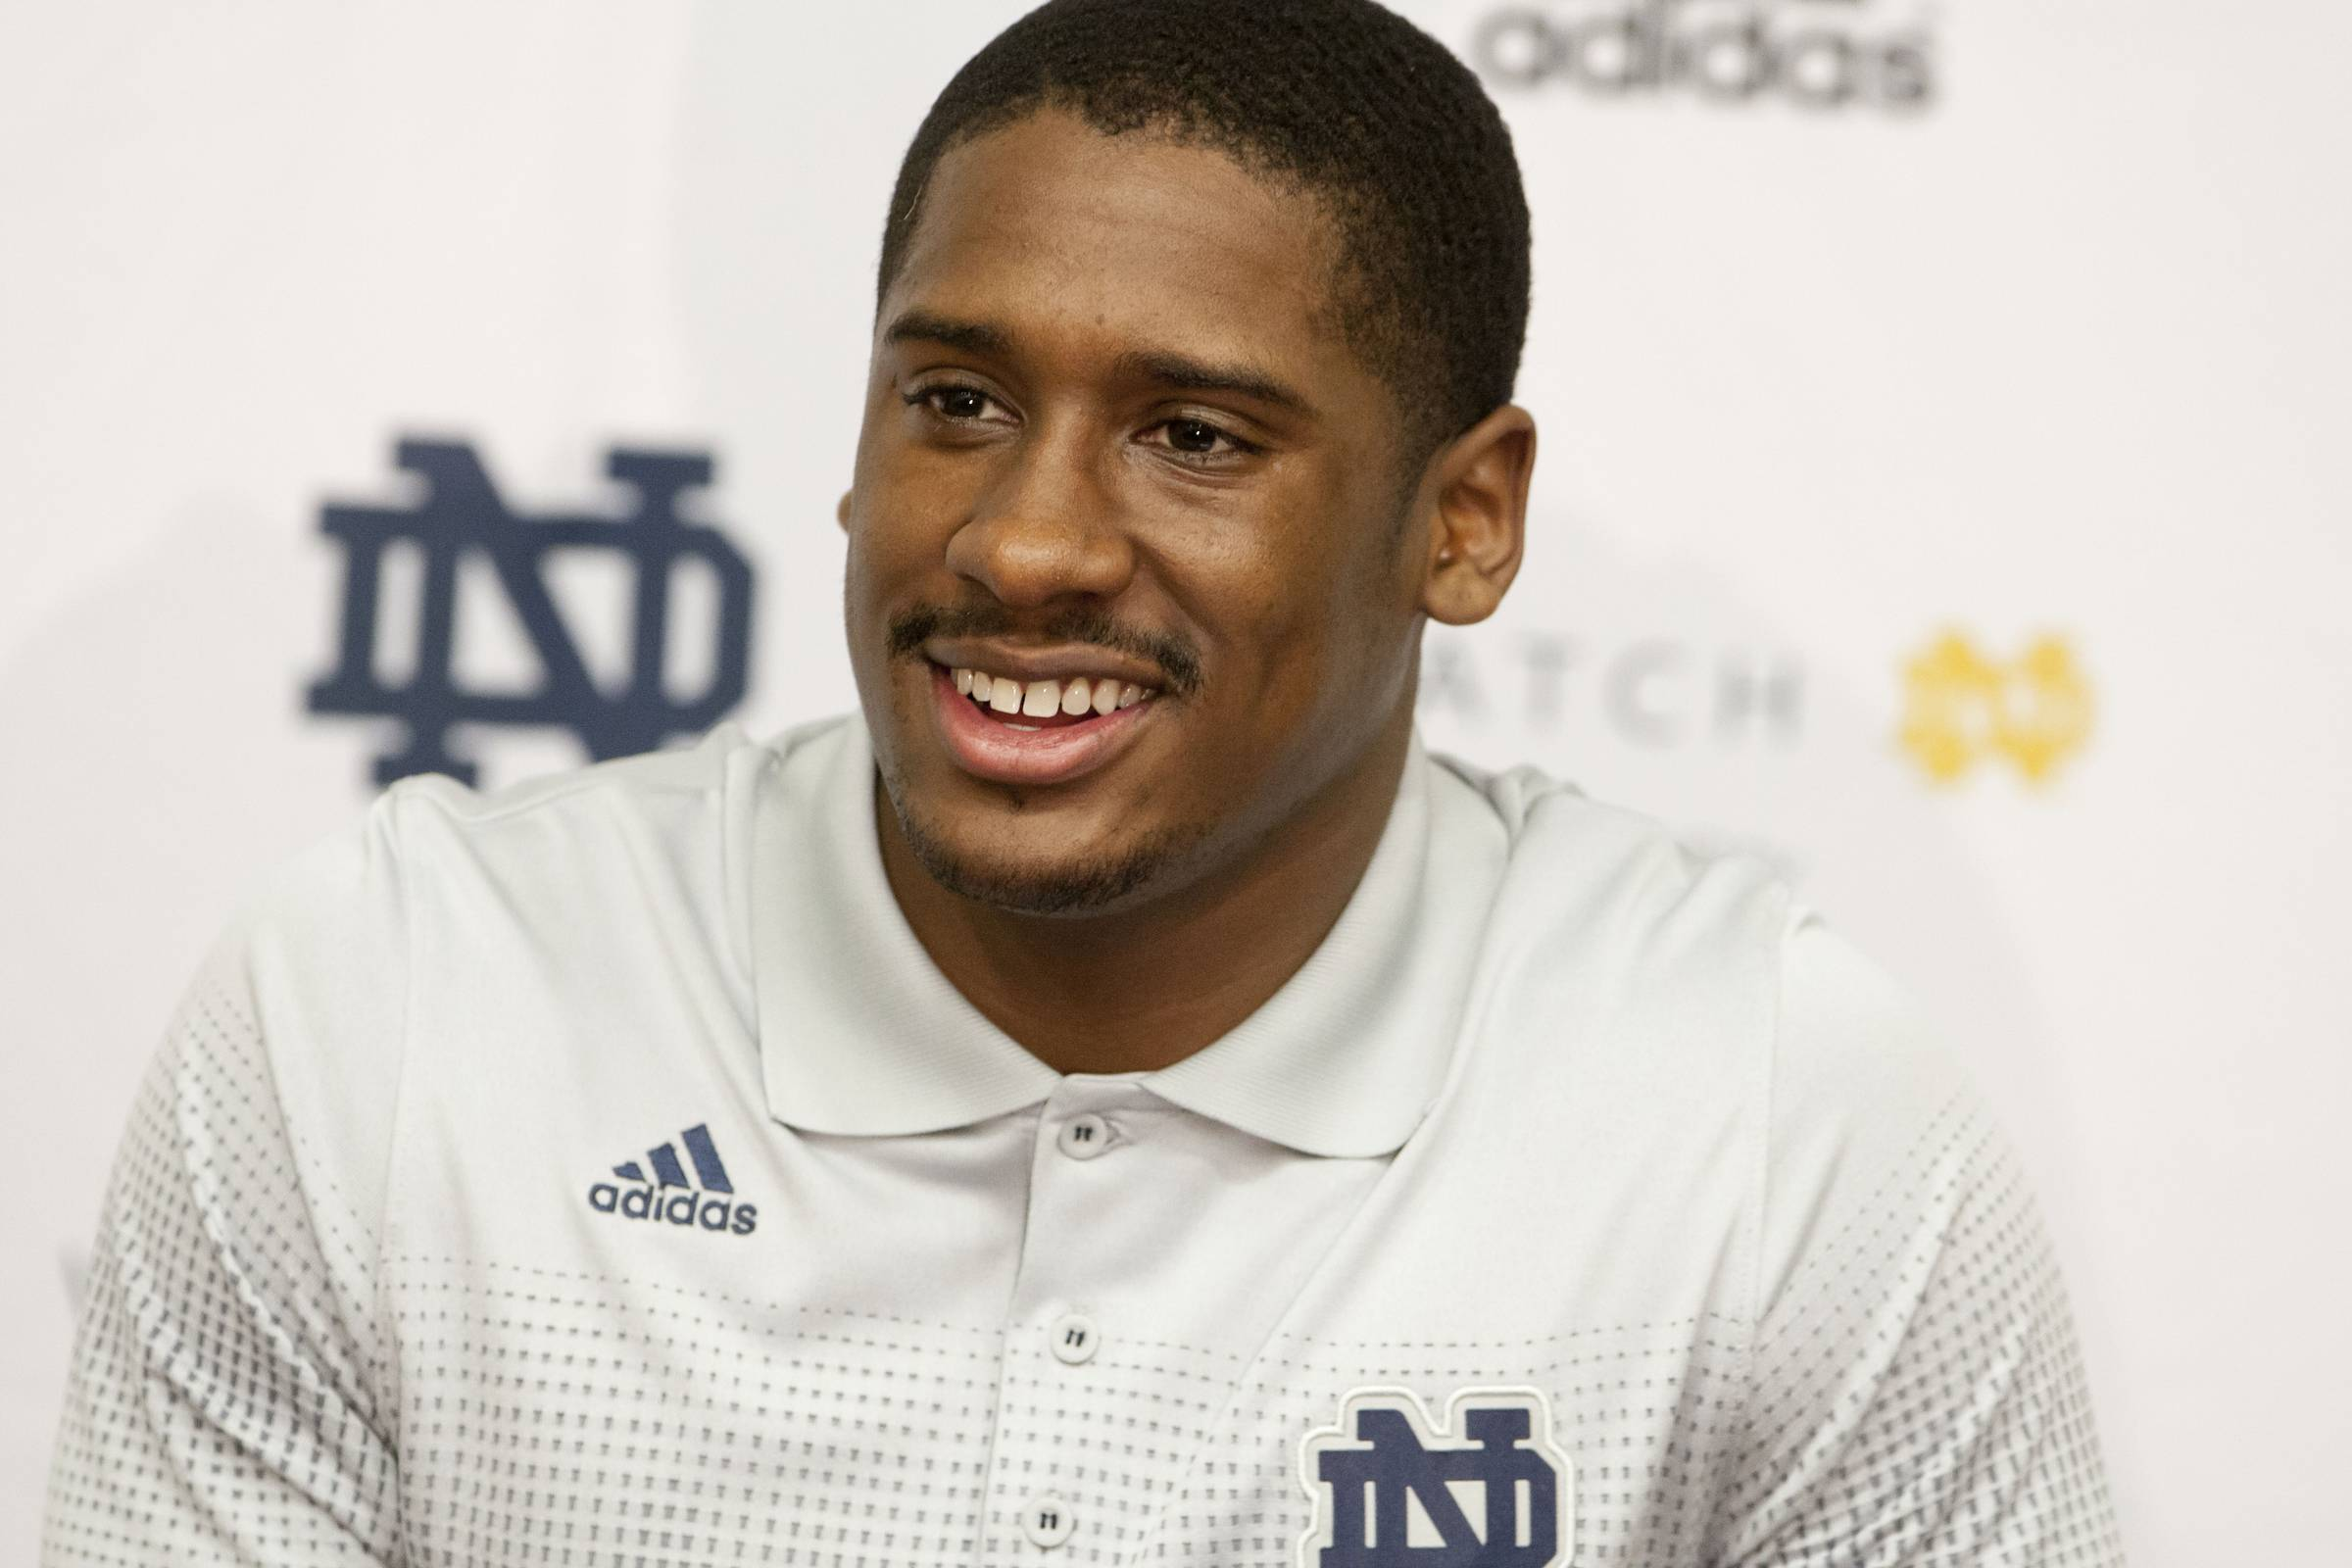 Notre Dame quarterback Everett Golson speaks to the media after the opening day of spring football practice on Monda in South Bend, Ind. Golson said what he missed most last season during his suspension was working with his teammates.